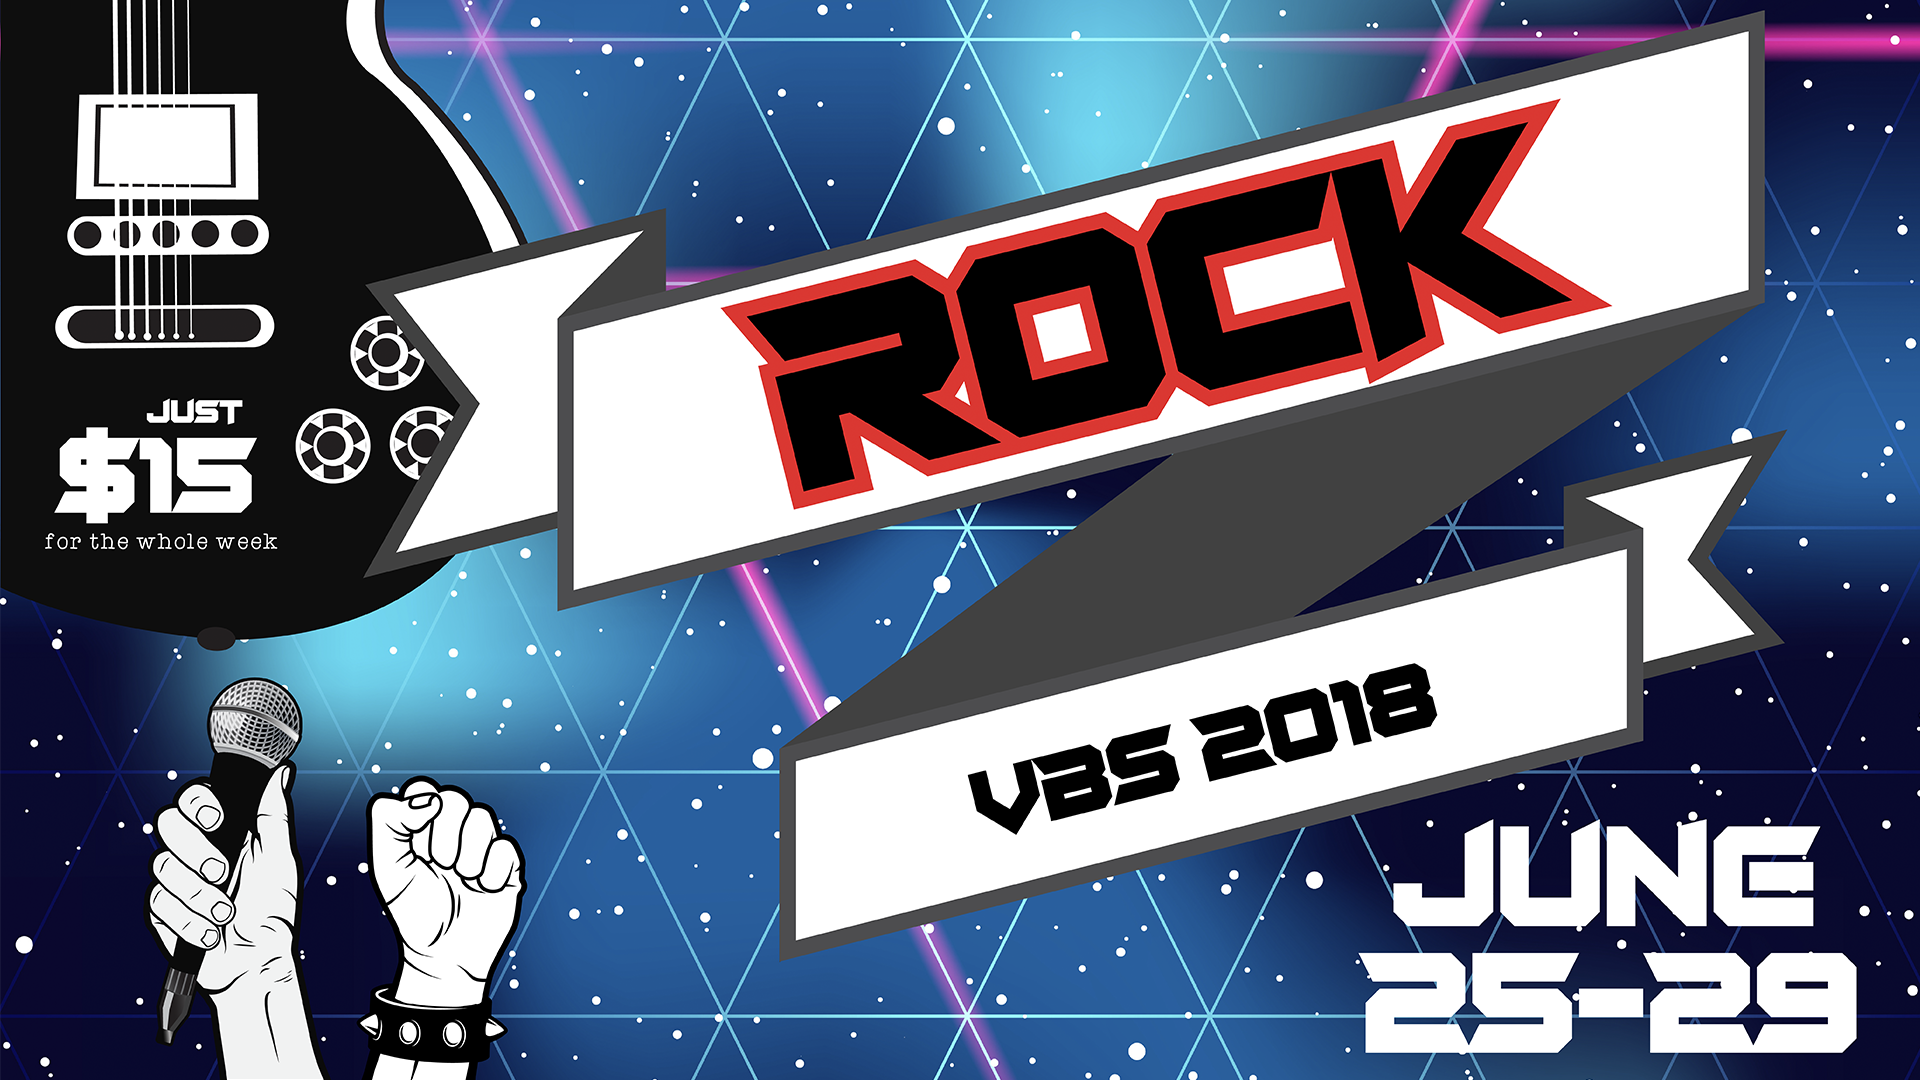 Rock vbs promo slide